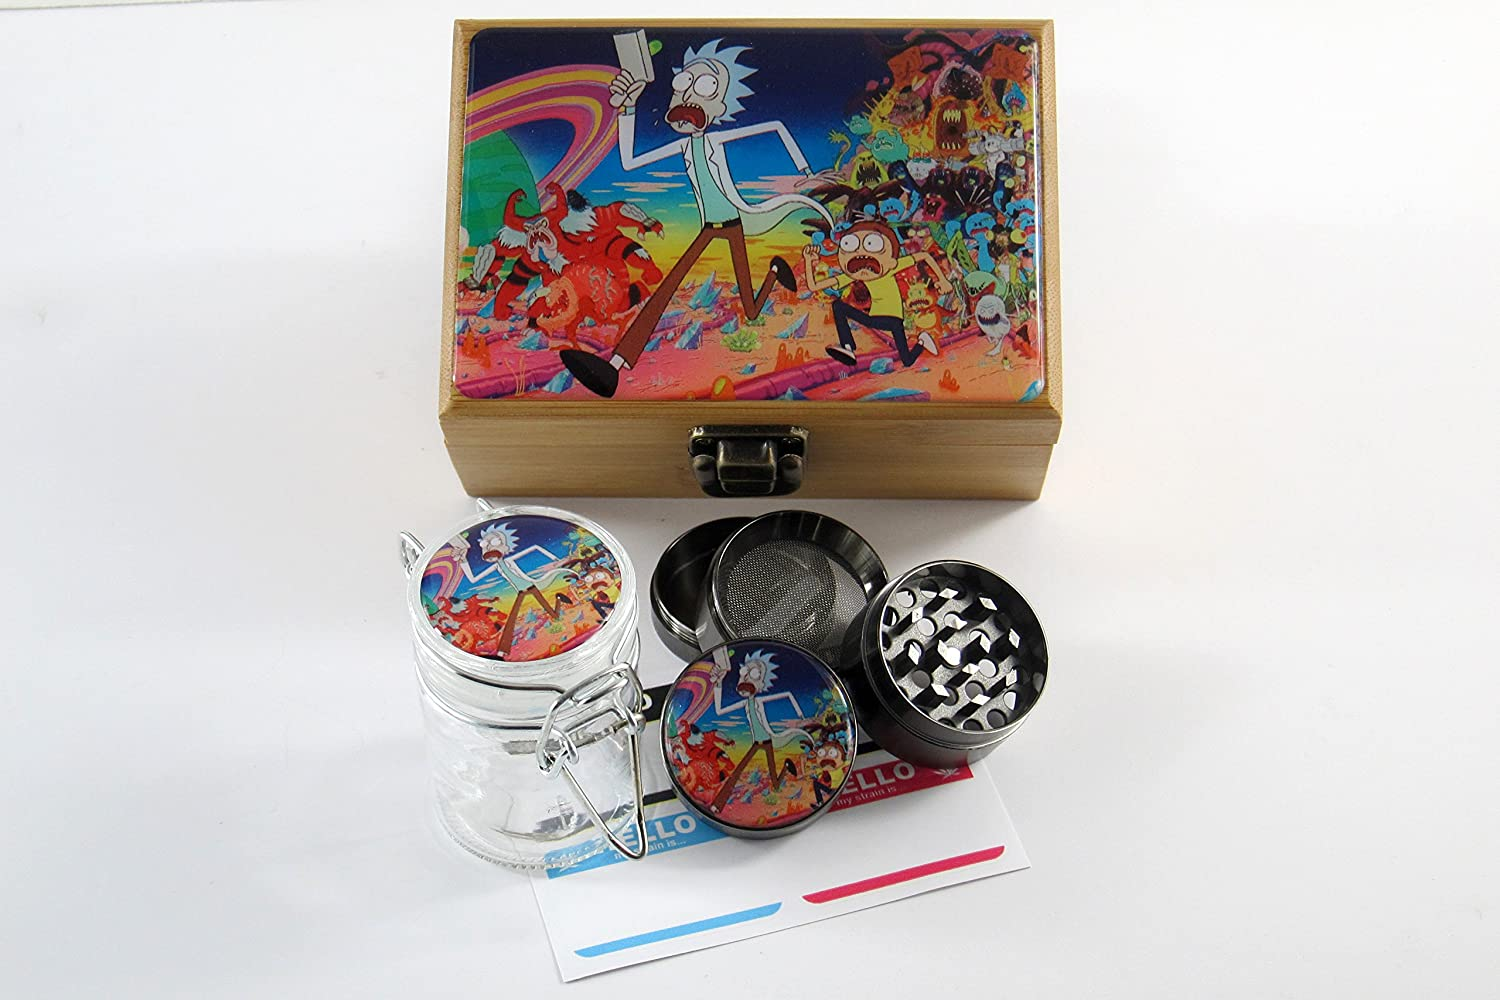 Rick and Morty Herb Stash Box Combo - 2 inch Grinder, 2.5 inch Glass Jar & Labels (Universe)